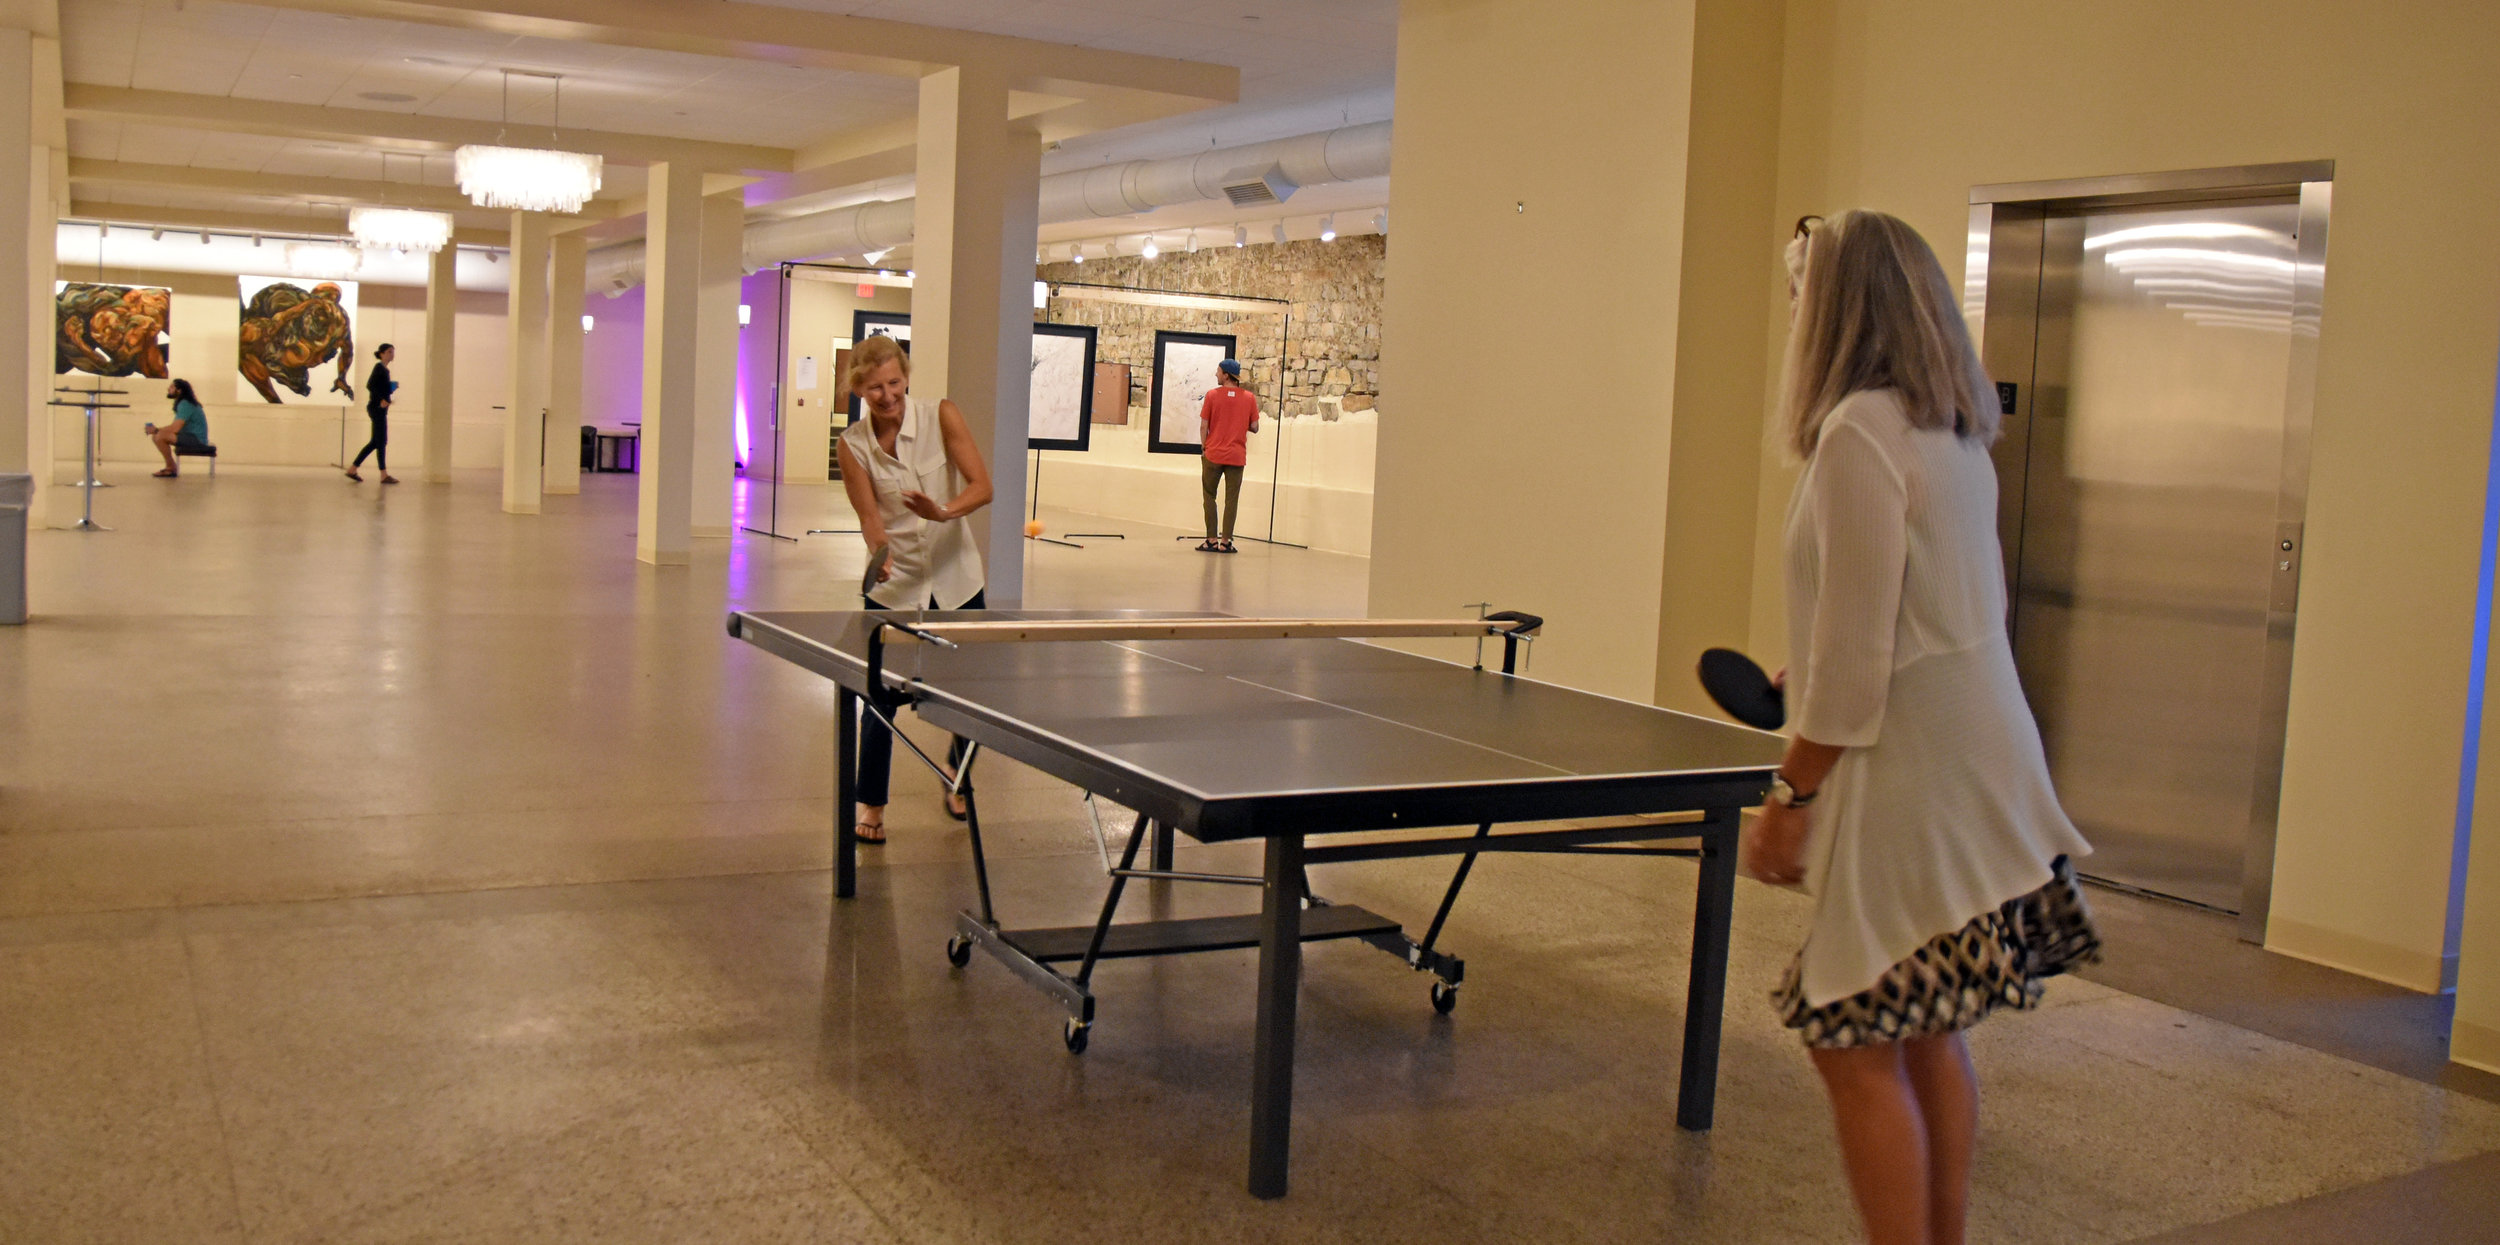 Above: a quick snap of the festivities at the opening reception for RIGID DESIGNATORS (note improvised table tennis net)